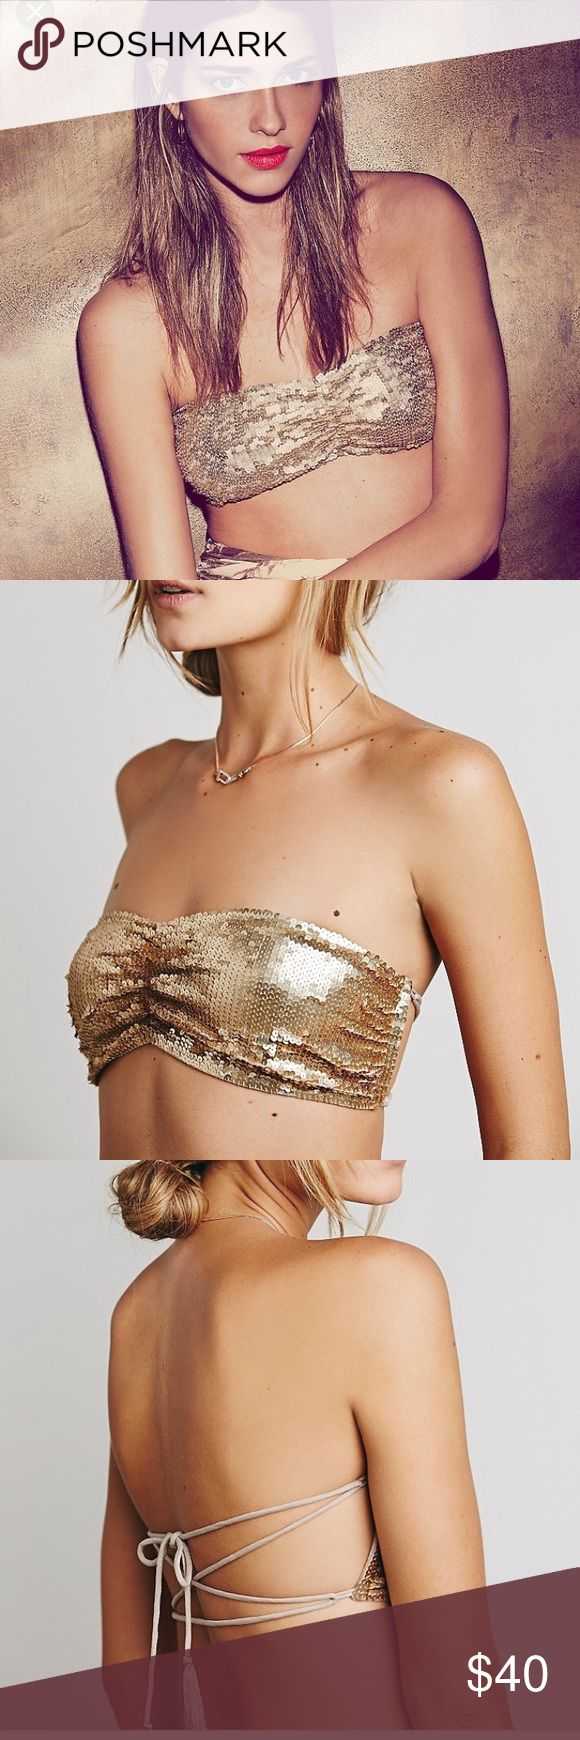 Free people sequin bandeau top new boho chic Great sequin festival top by free people new sold out in stores ............🎉🎉🎉🎉Tags:  tigermist tiger mist urban outfitters free people anthropologie  asos missguided nasty gal hello molly selfie leslie xenia boutique boohoo Windsor 🌸🌸 Free People Tops